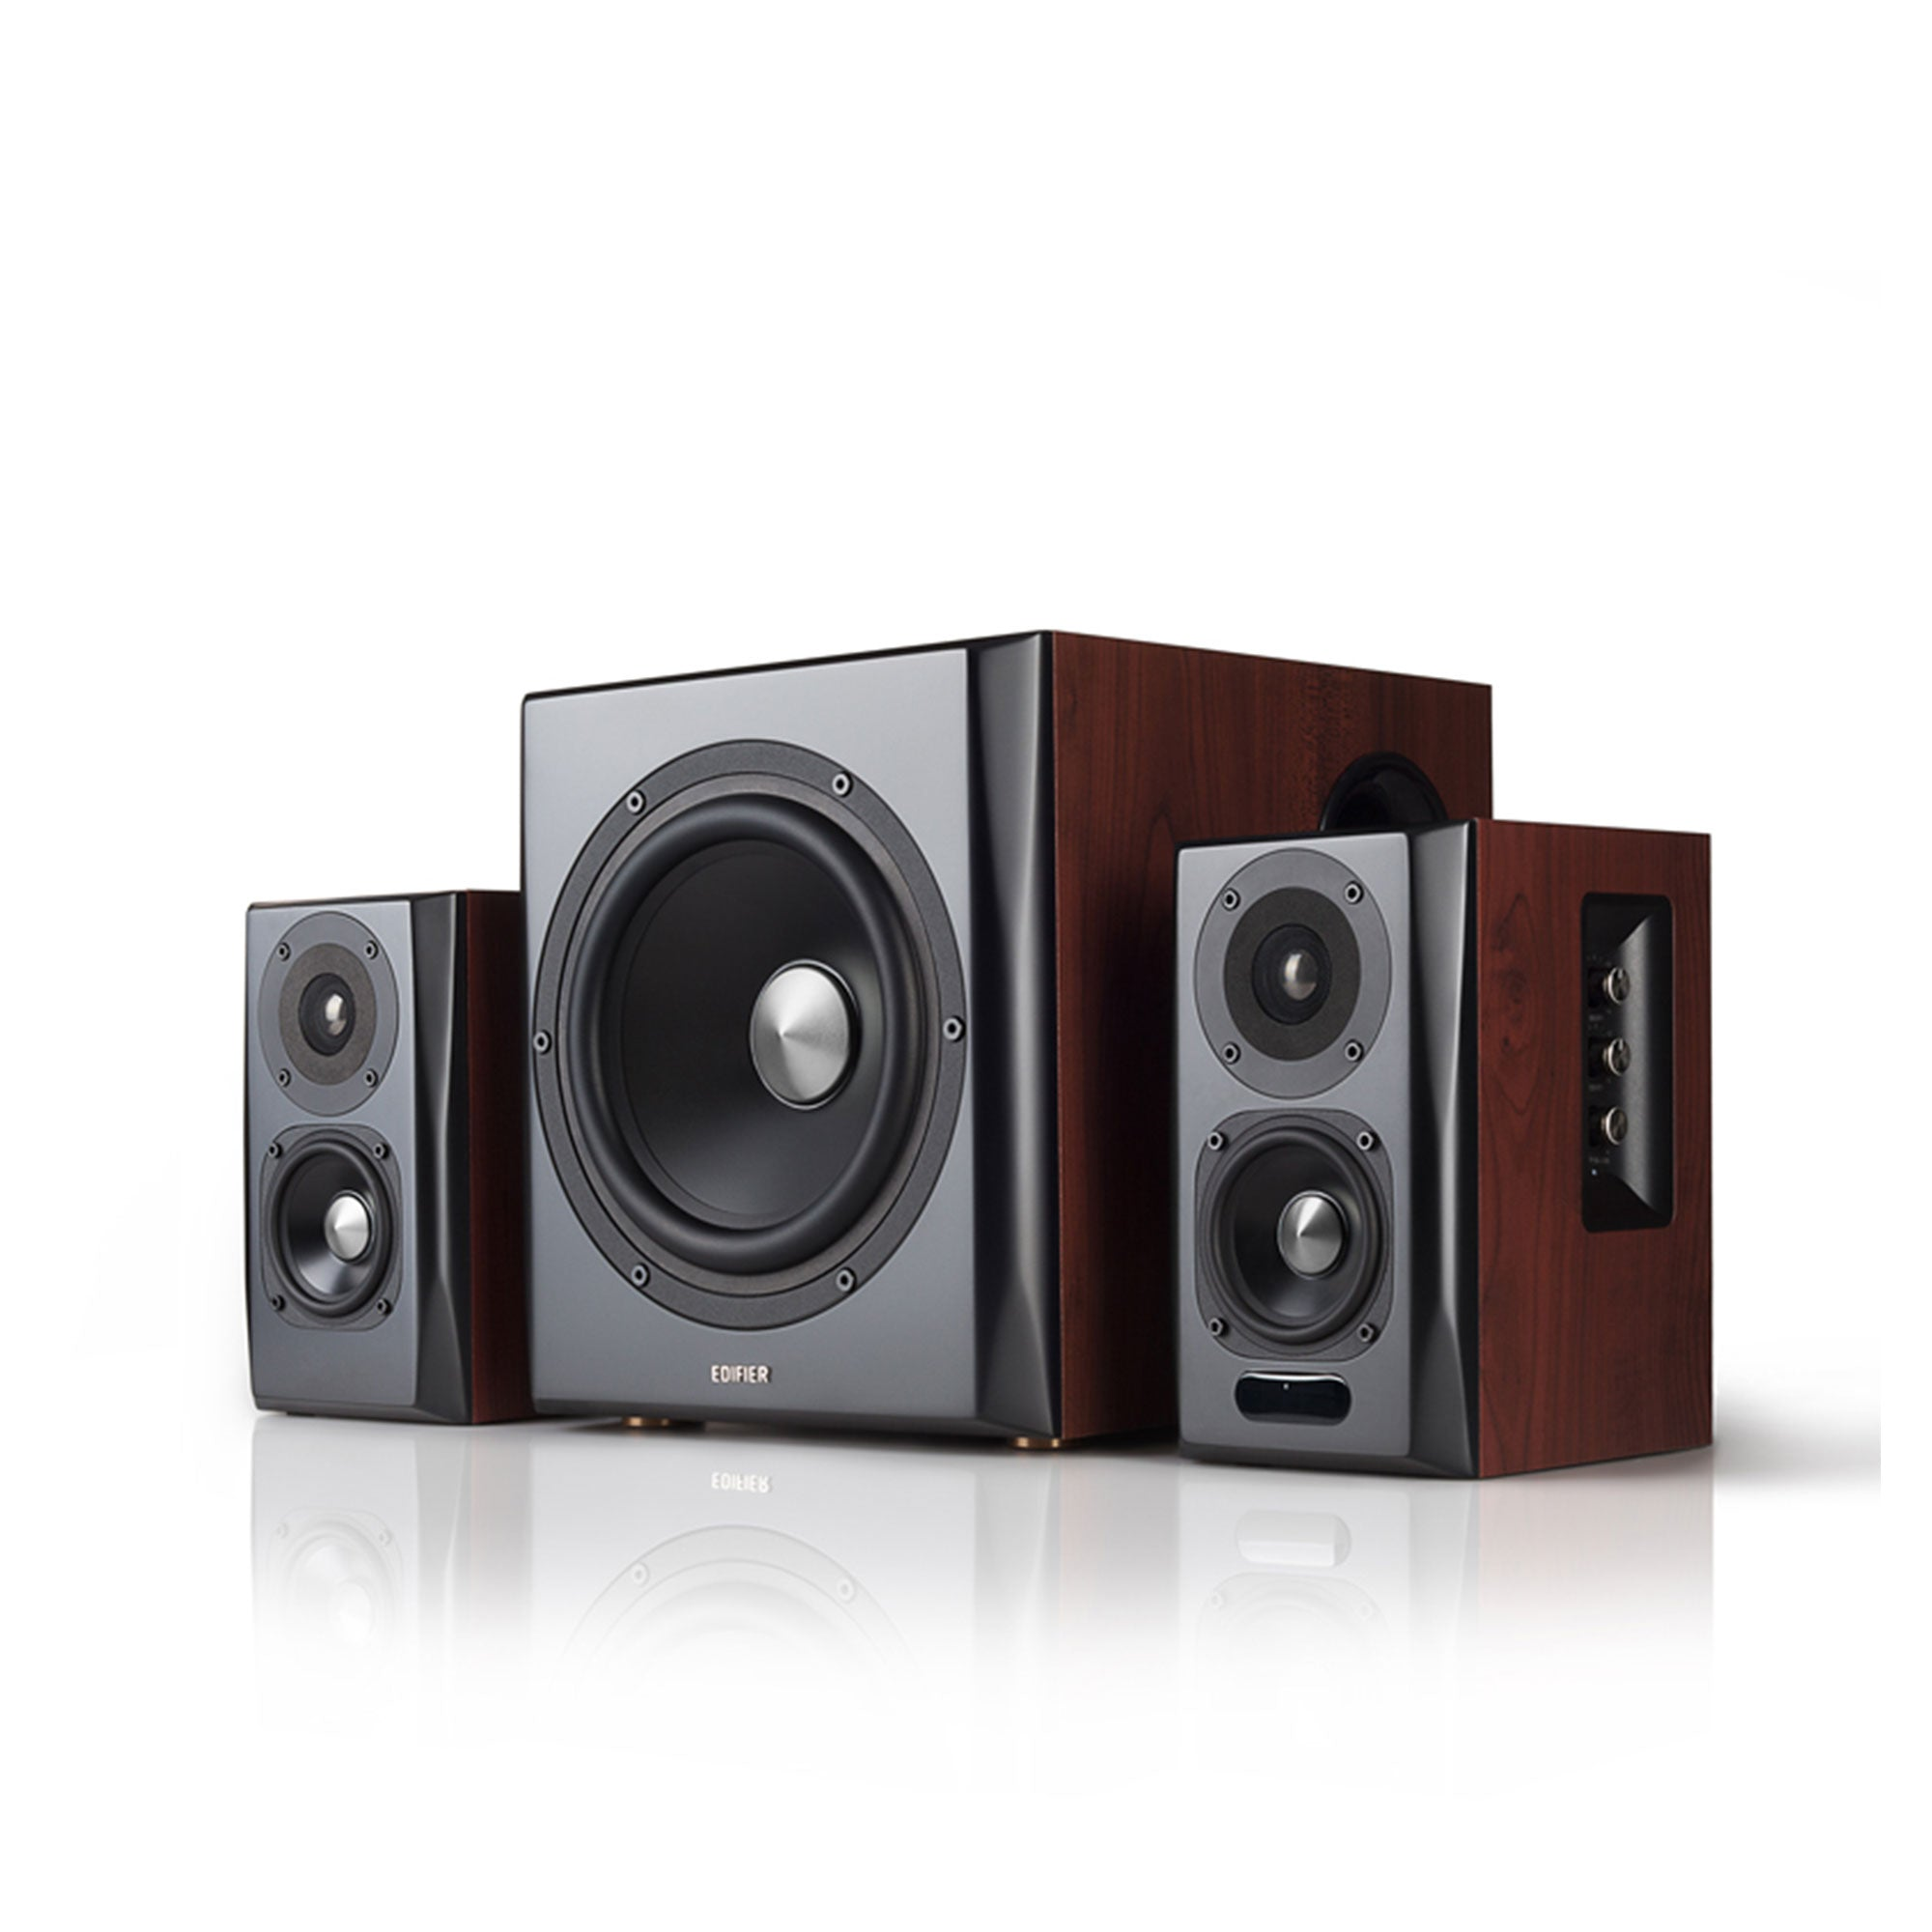 S350DB - 2.1. Active Desktop / Bookshelf / Gaming Speaker With Subwoofer - Bluetooth